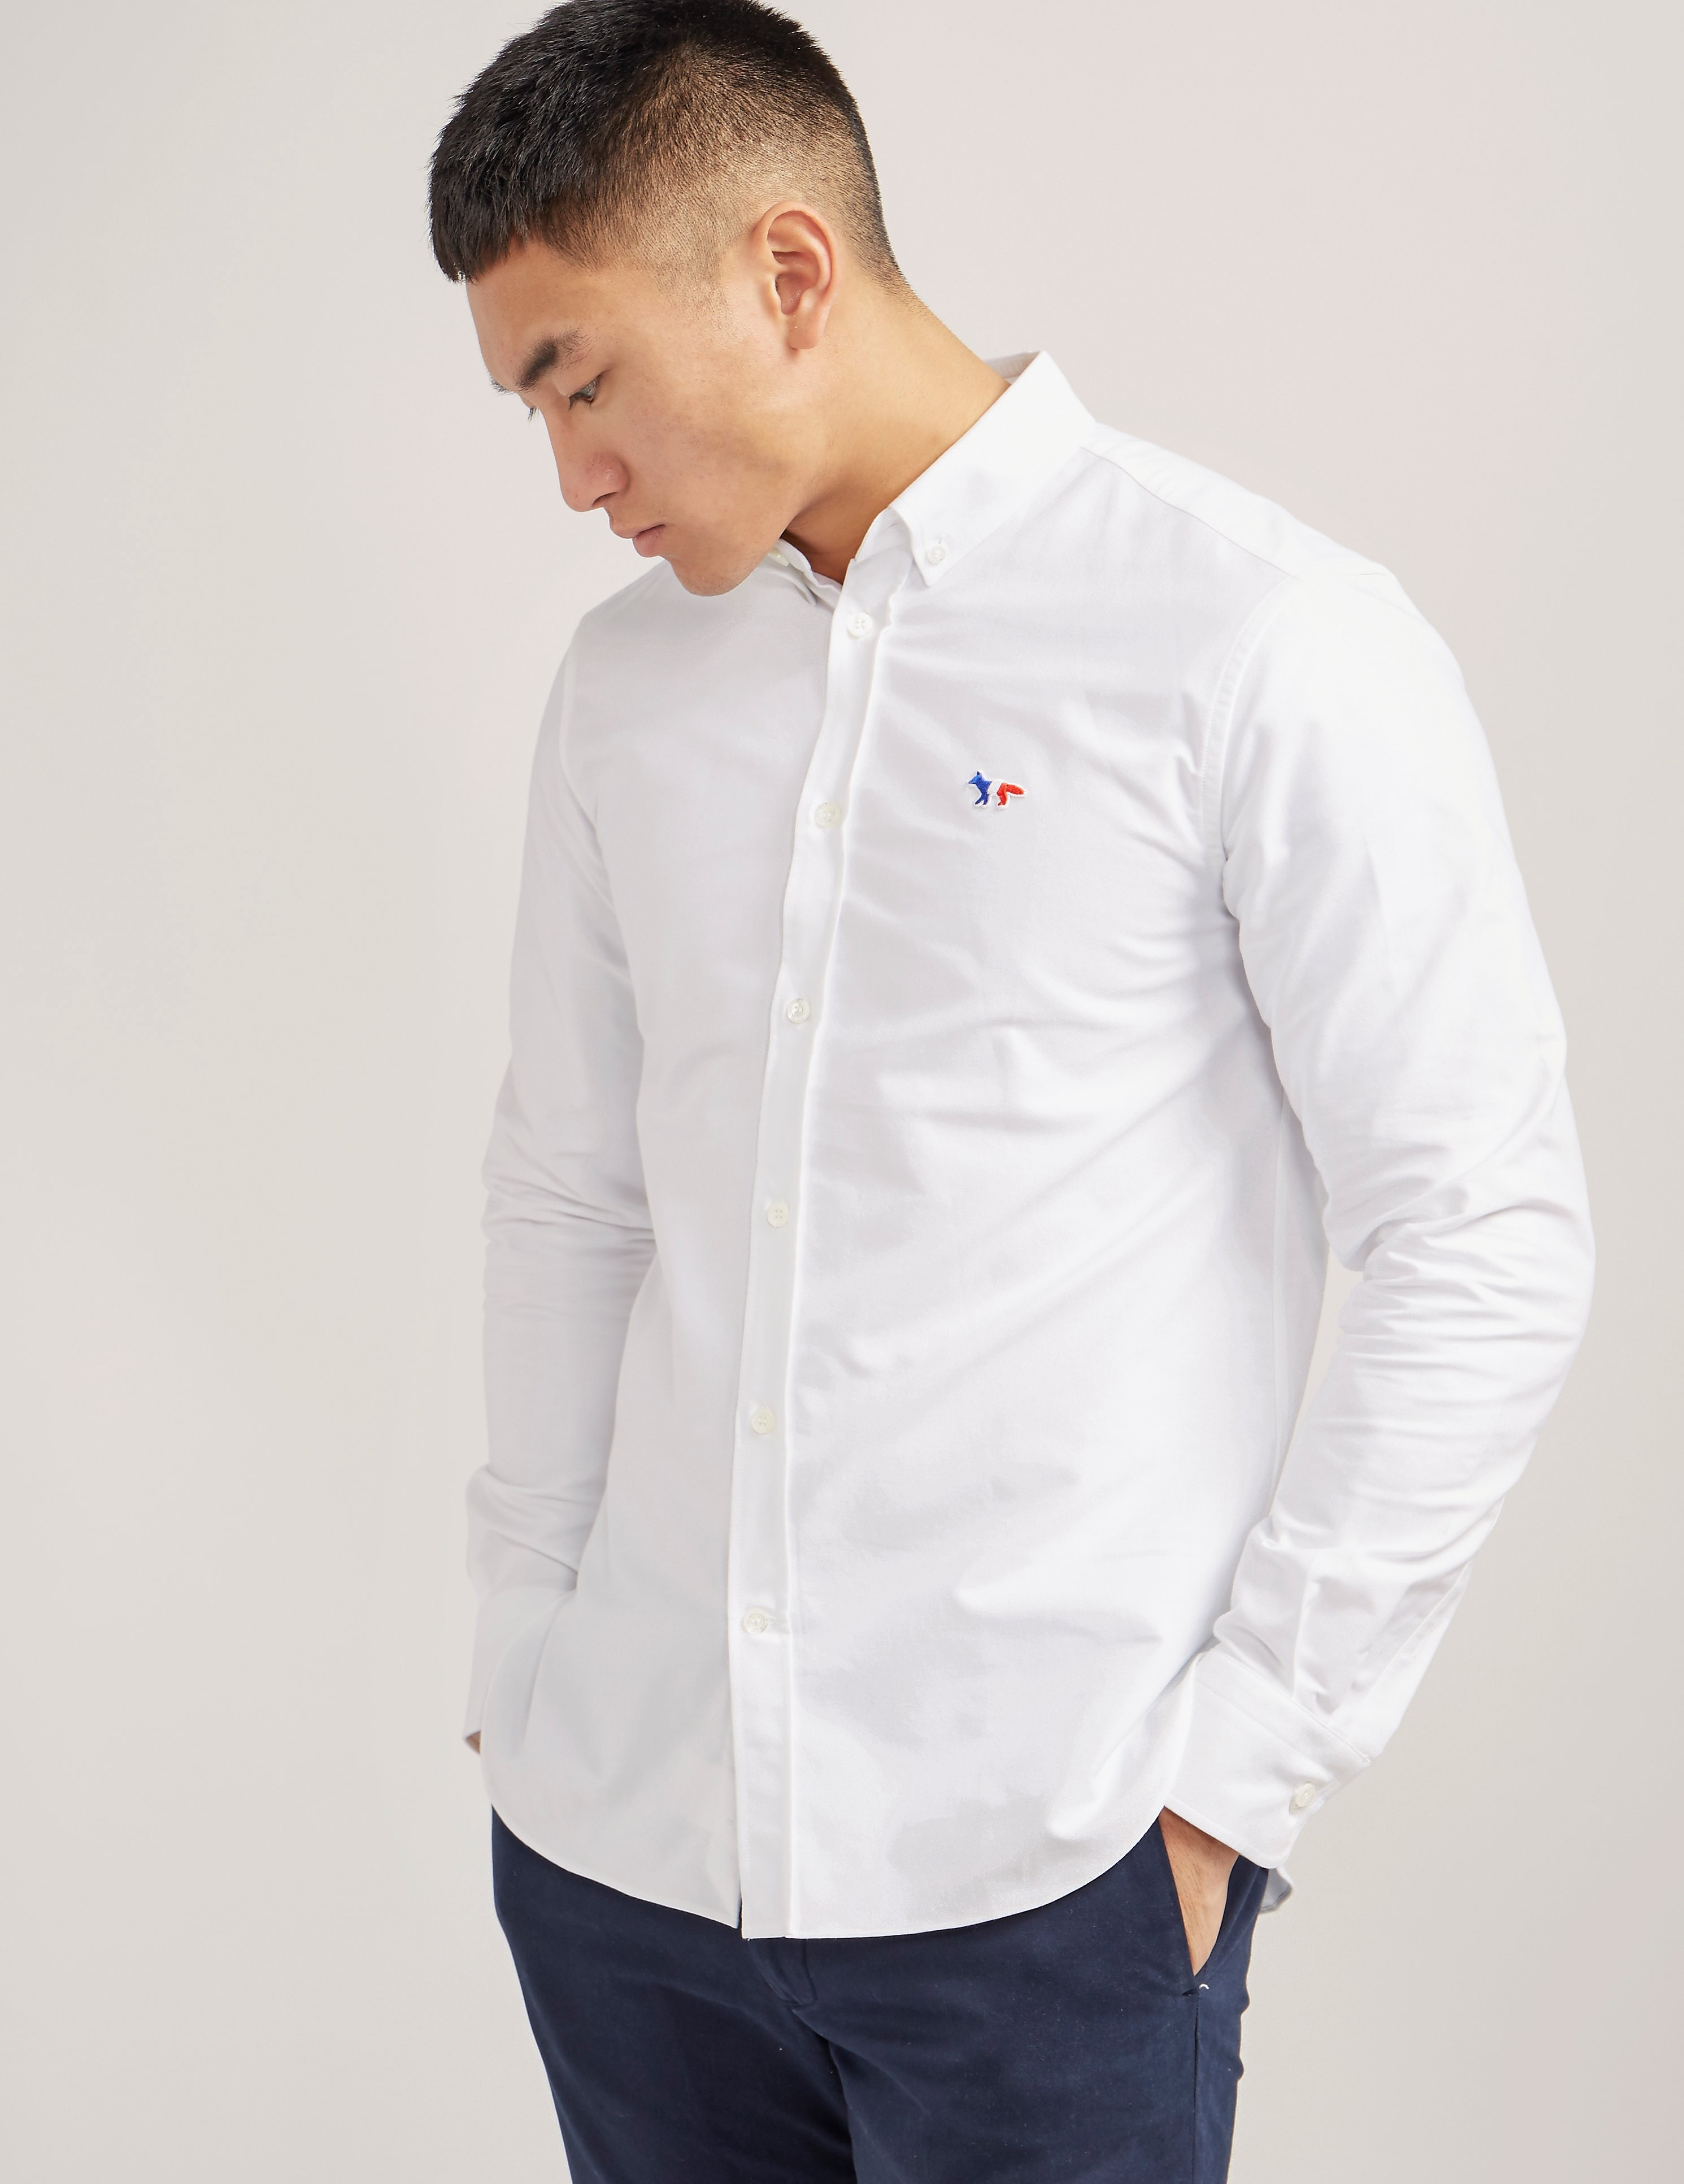 Maison Kitsune Tricolour Fox Oxford Shirt